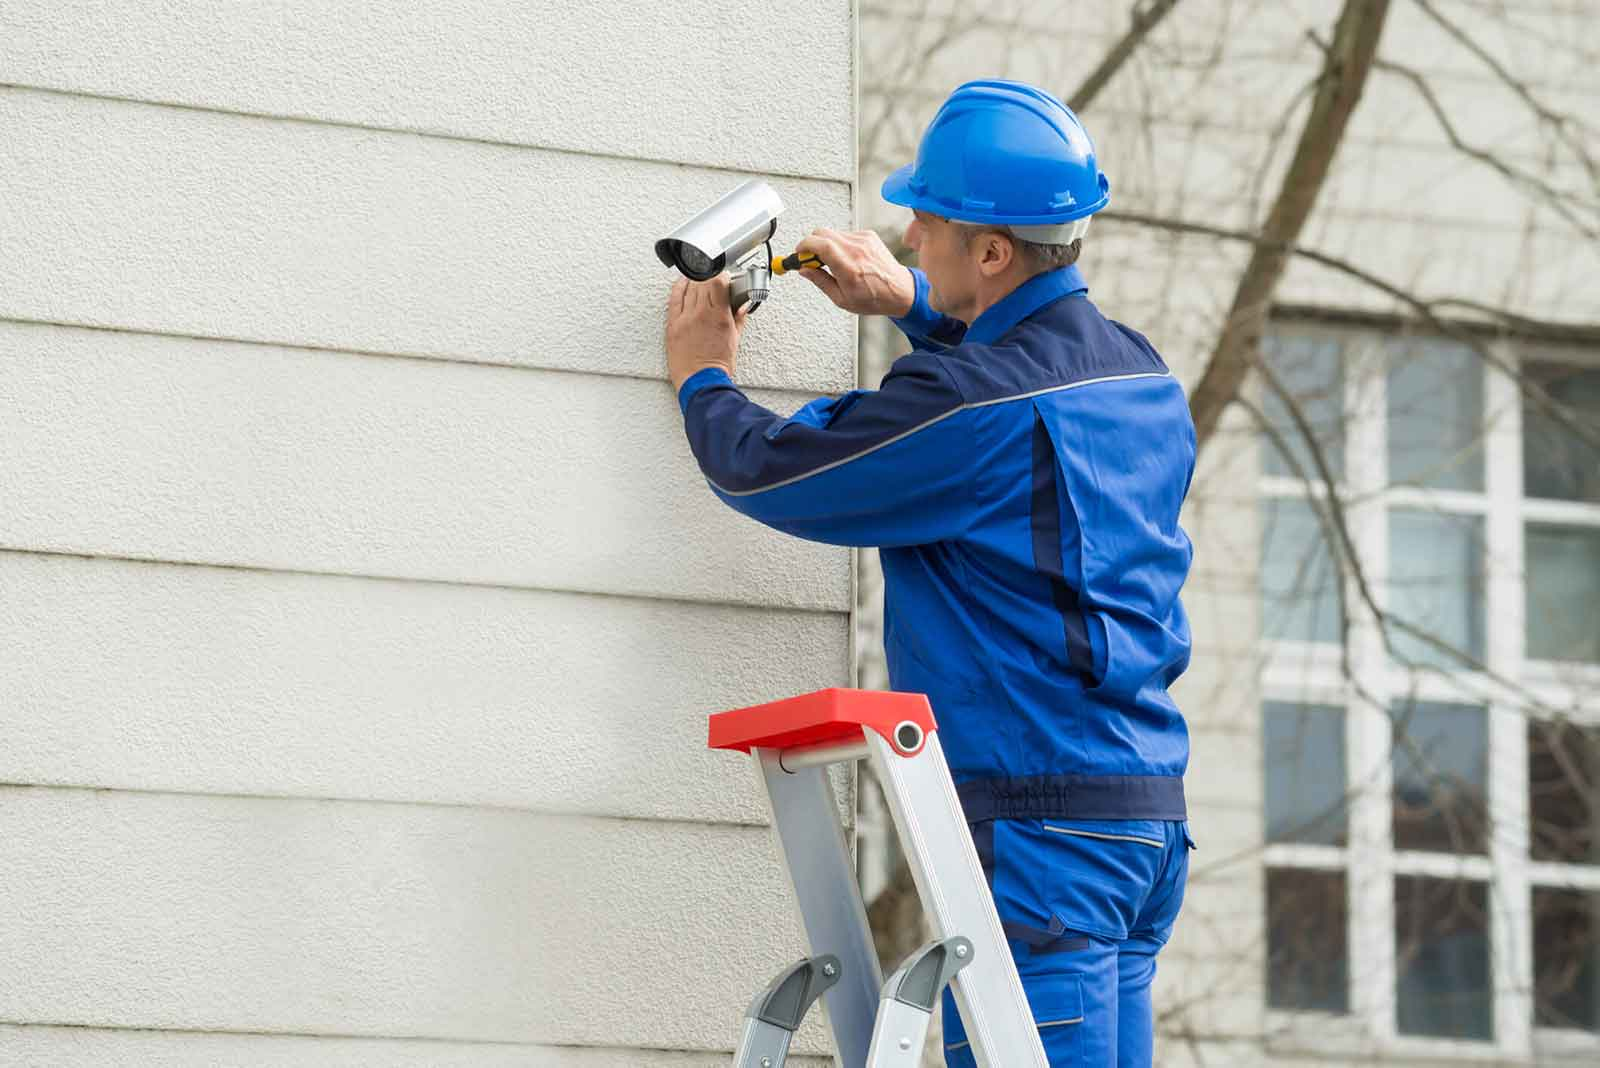 Male Technician Standing On Stepladder Fitting CCTV Camera